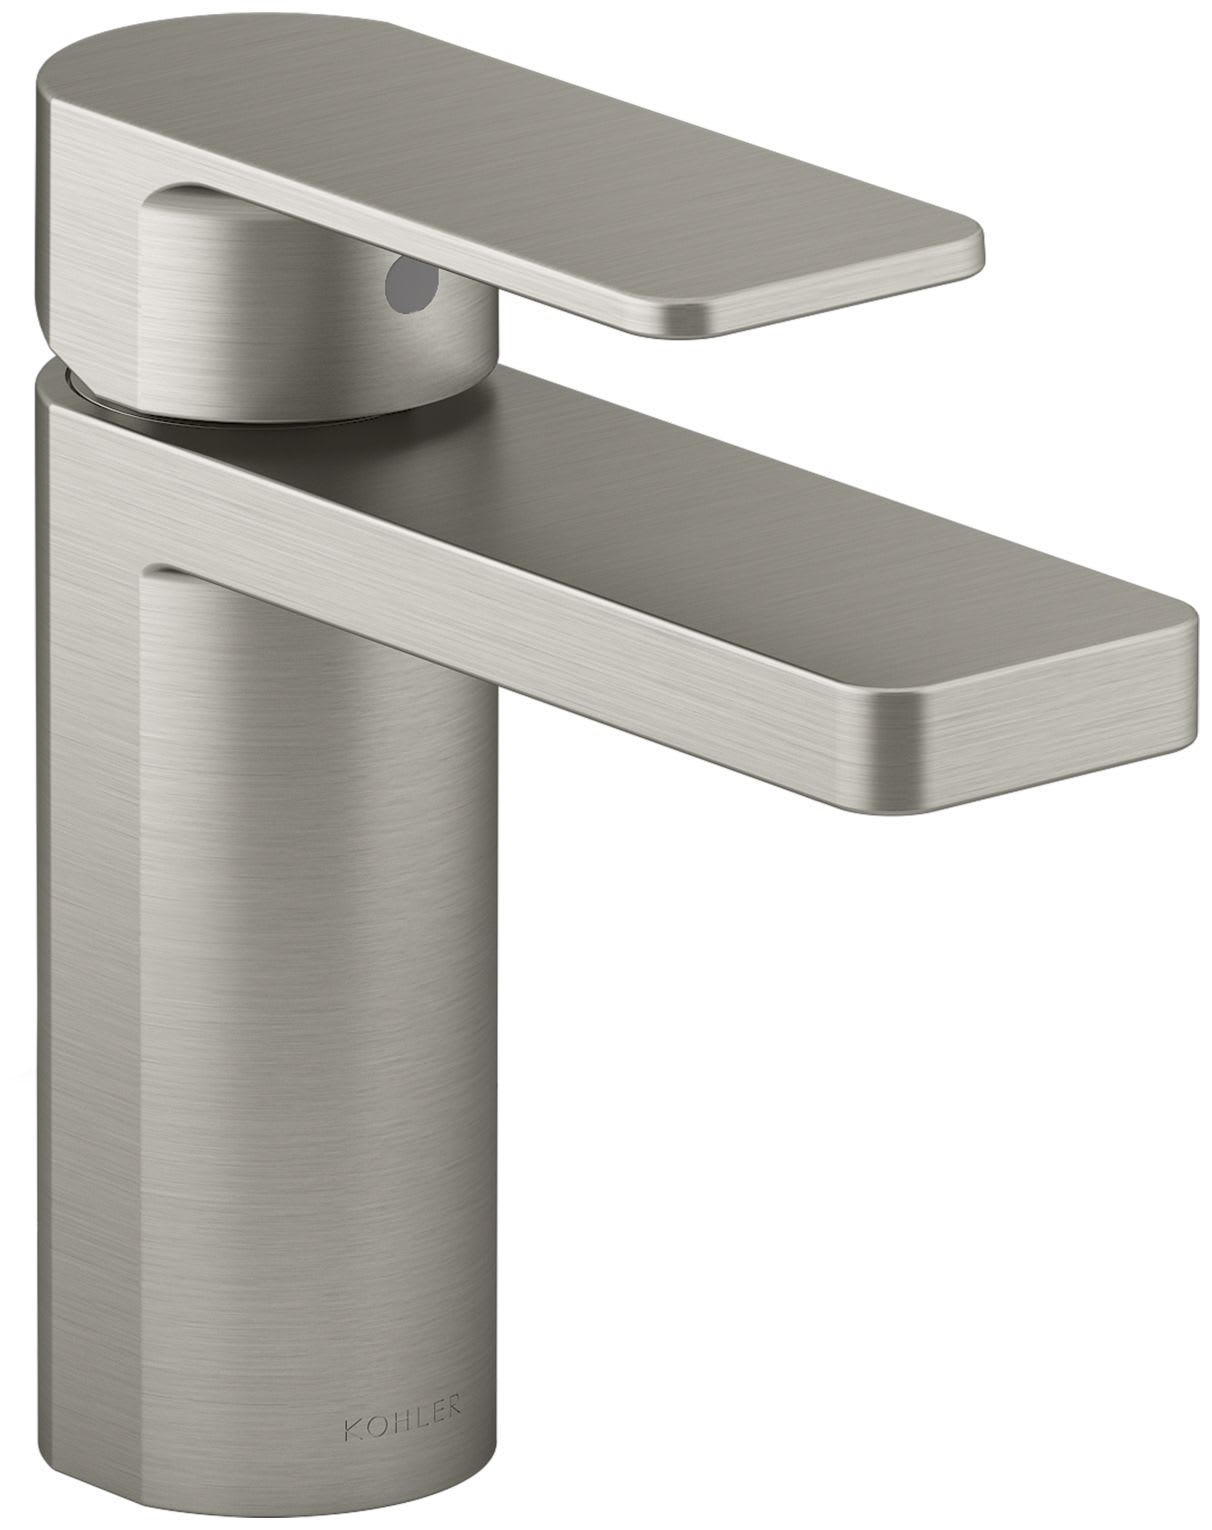 Kohler K 23472 4 Bn Vibrant Brushed Nickel Parallel 1 2 Gpm Single Hole Bathroom Faucet With Pop Up Drain Assembly Faucetdirect Com